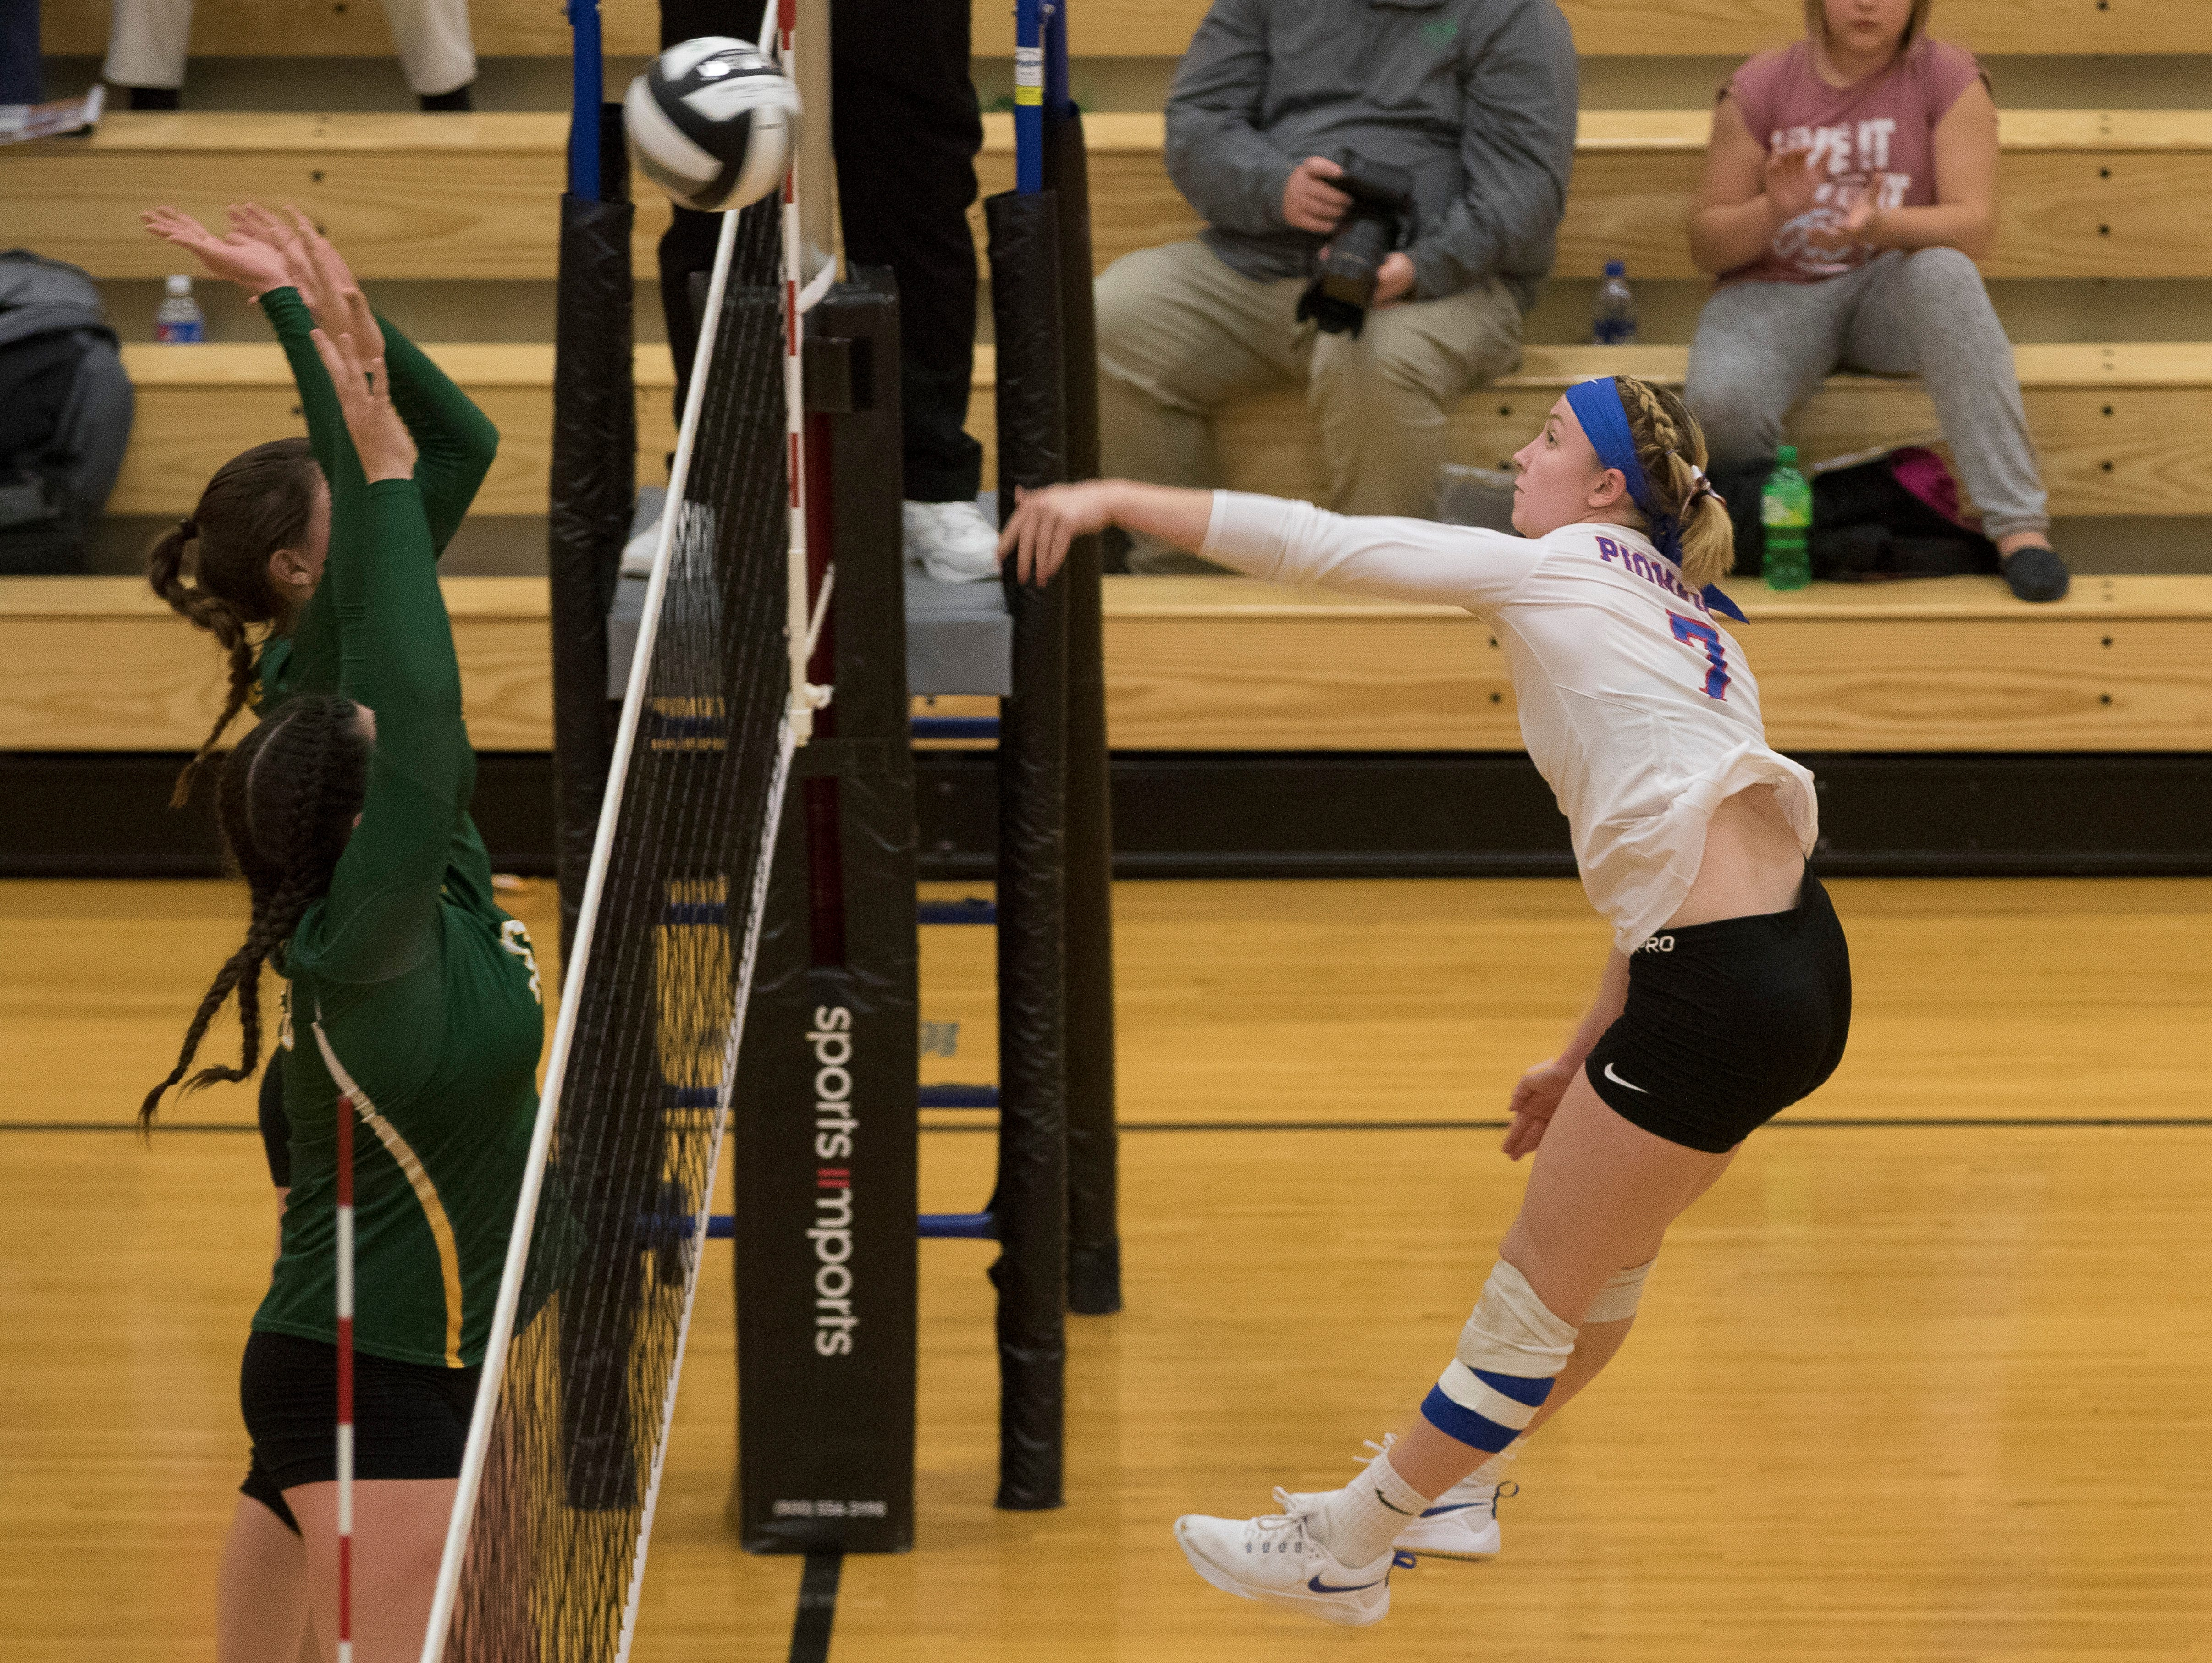 Zane Trace's Evie Bennett spikes a ball against North Adams Wednesday night at Waverly High School. Zane Trace will battle Southeastern in a Division III district finals match Saturday.